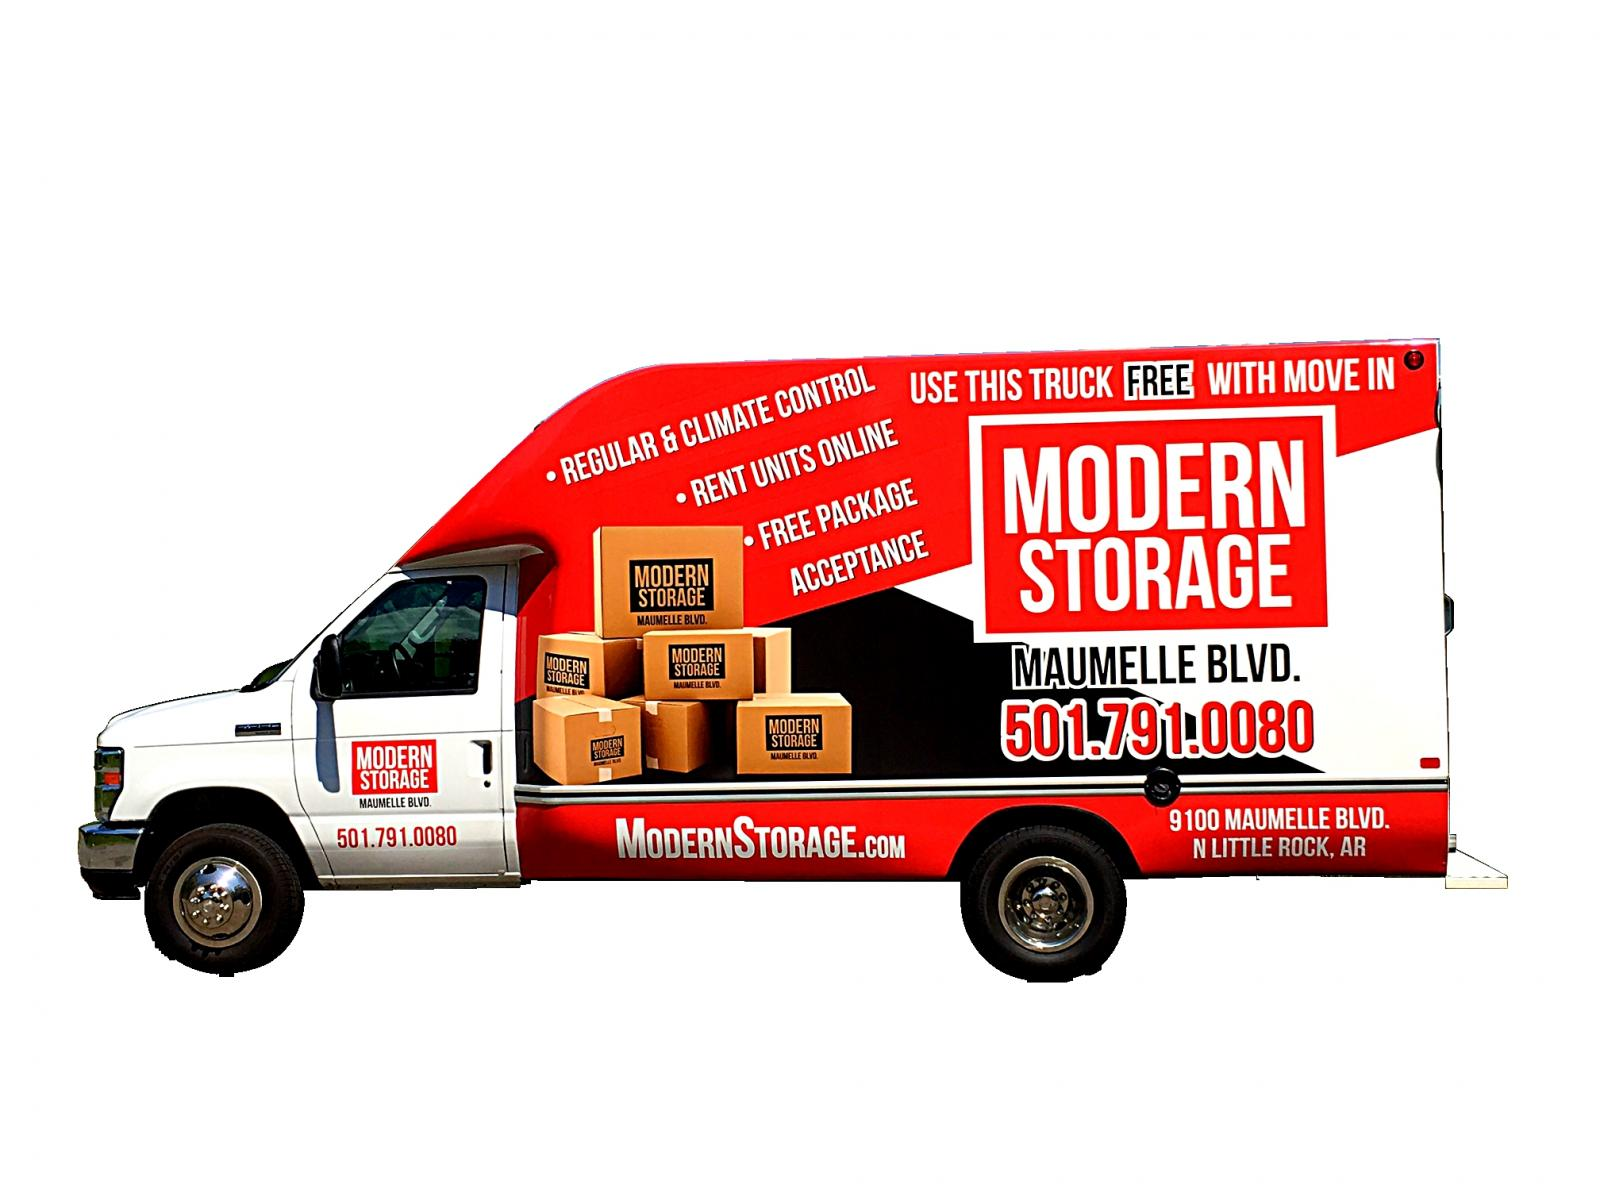 free moving truck with new storage unit reservation